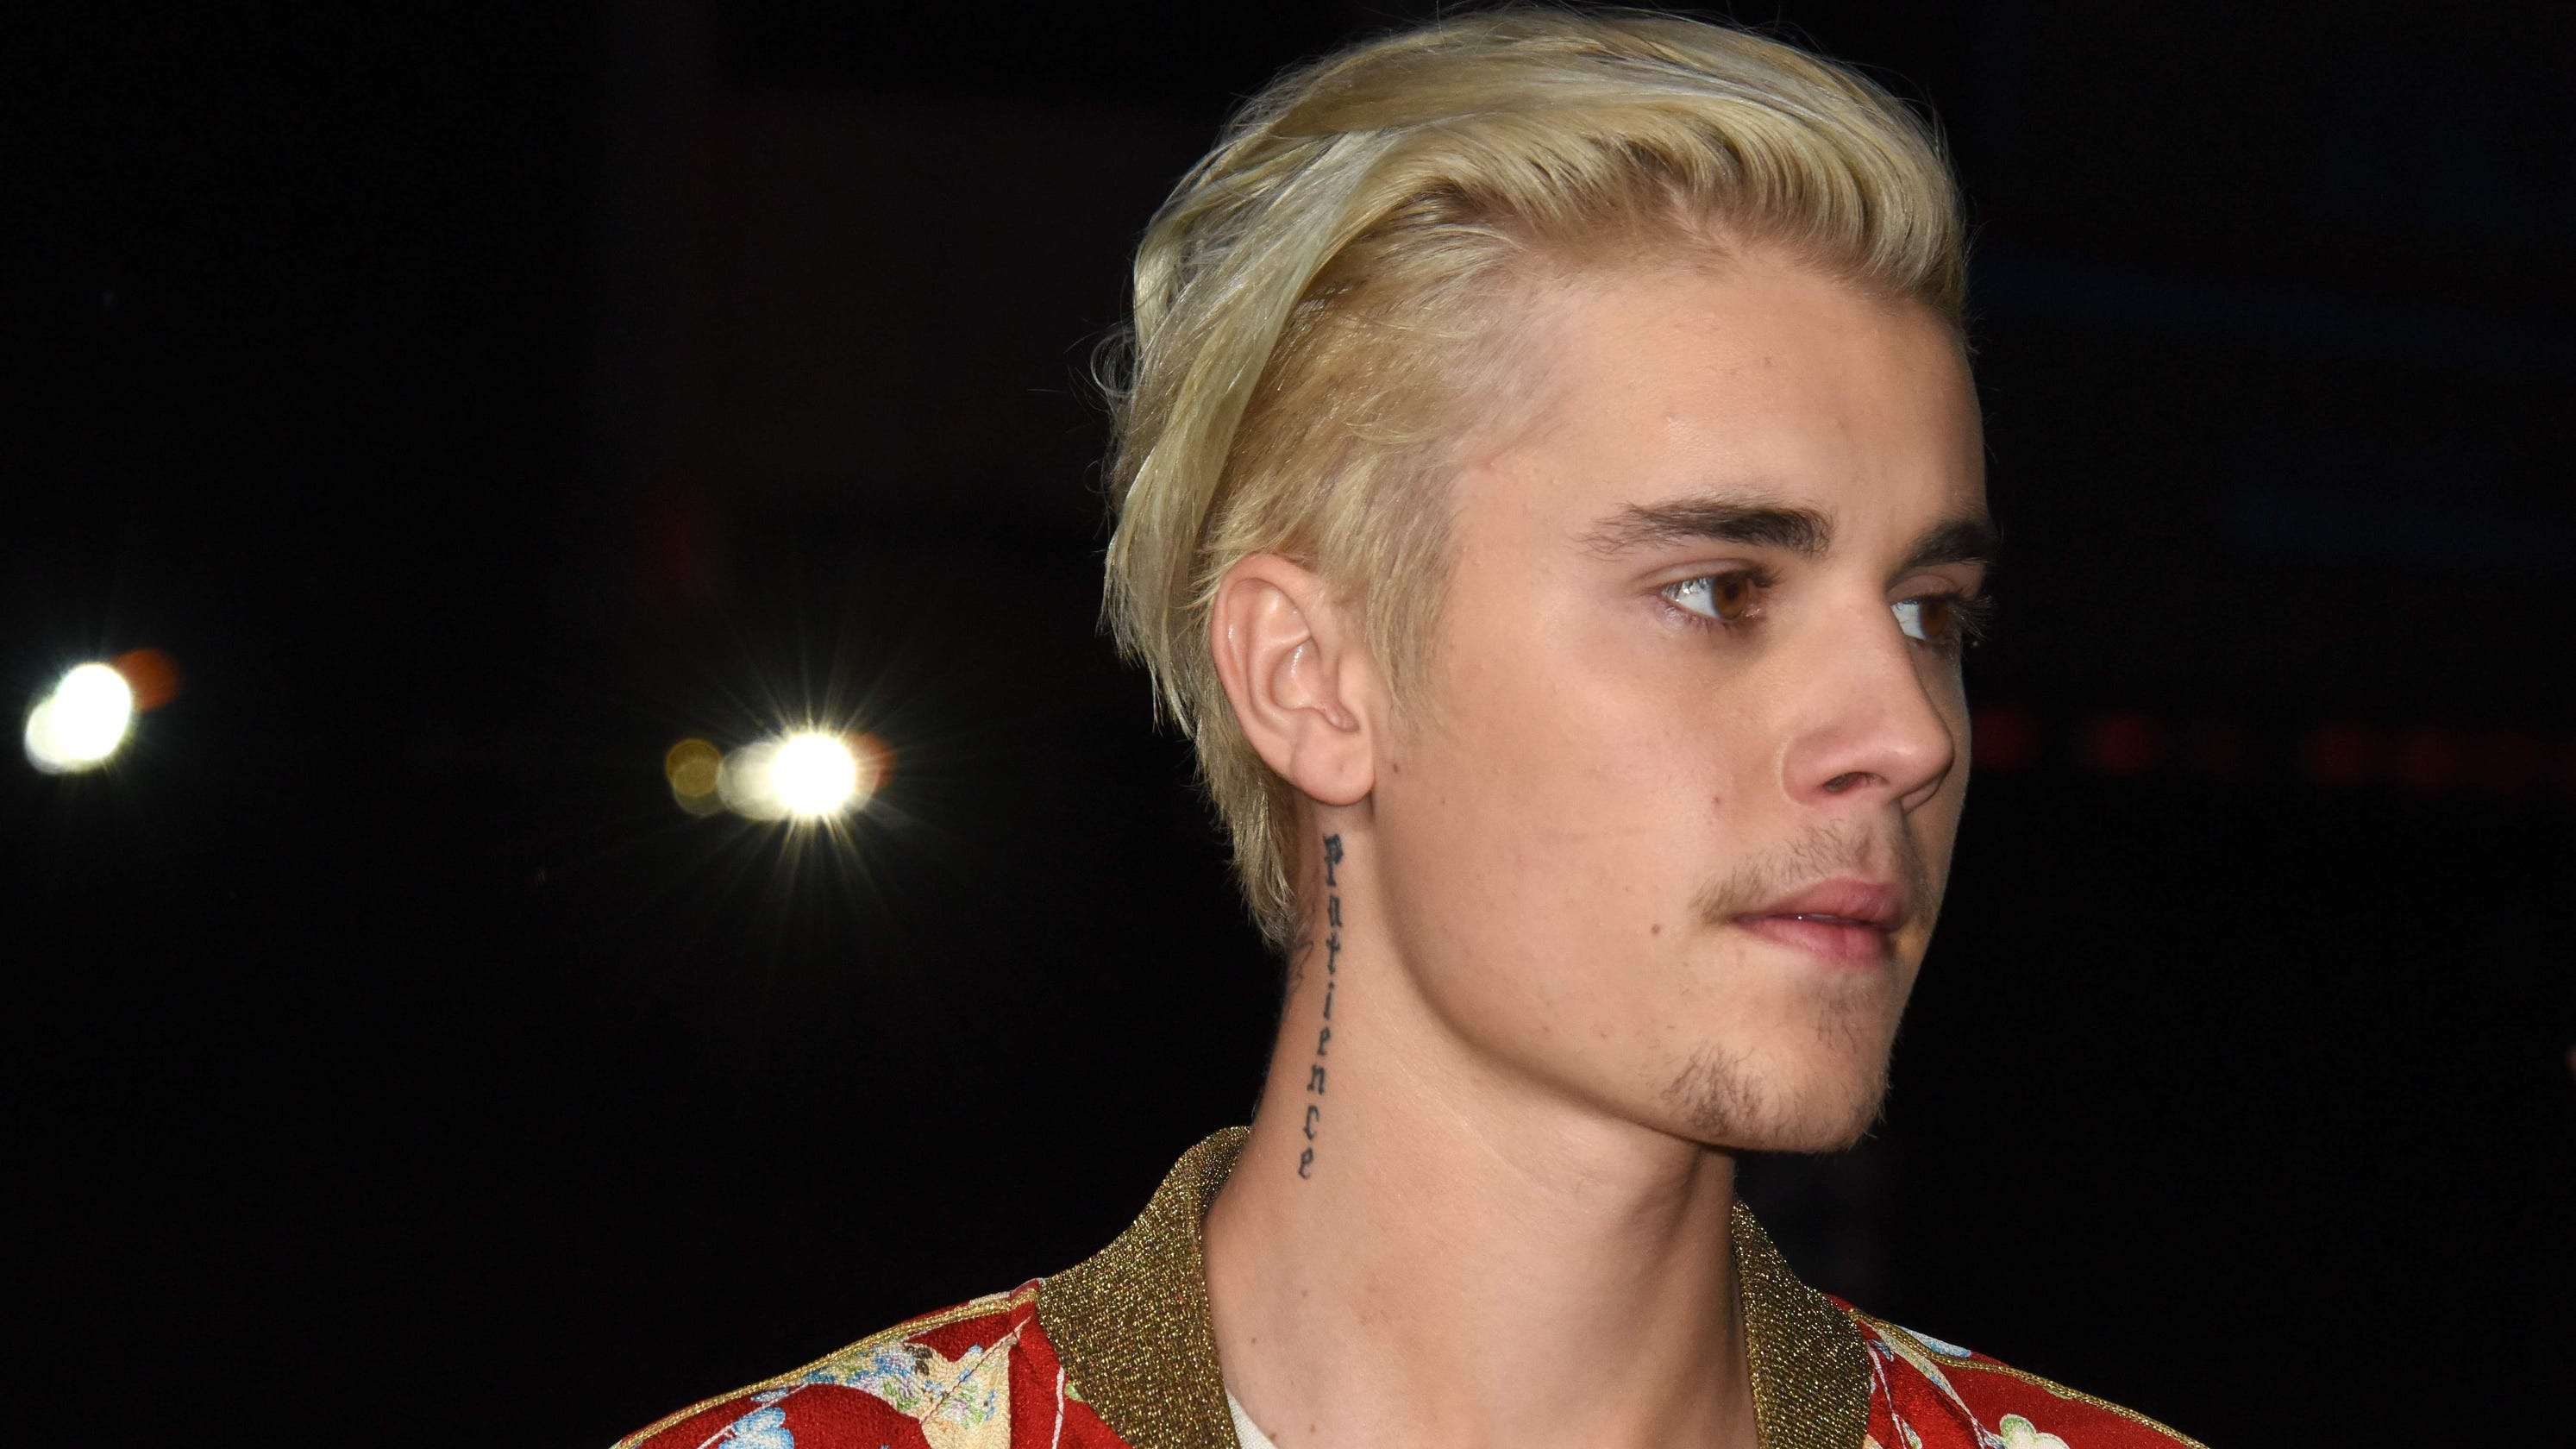 Justin Bieber reveals he's been 'struggling a lot,' asks for